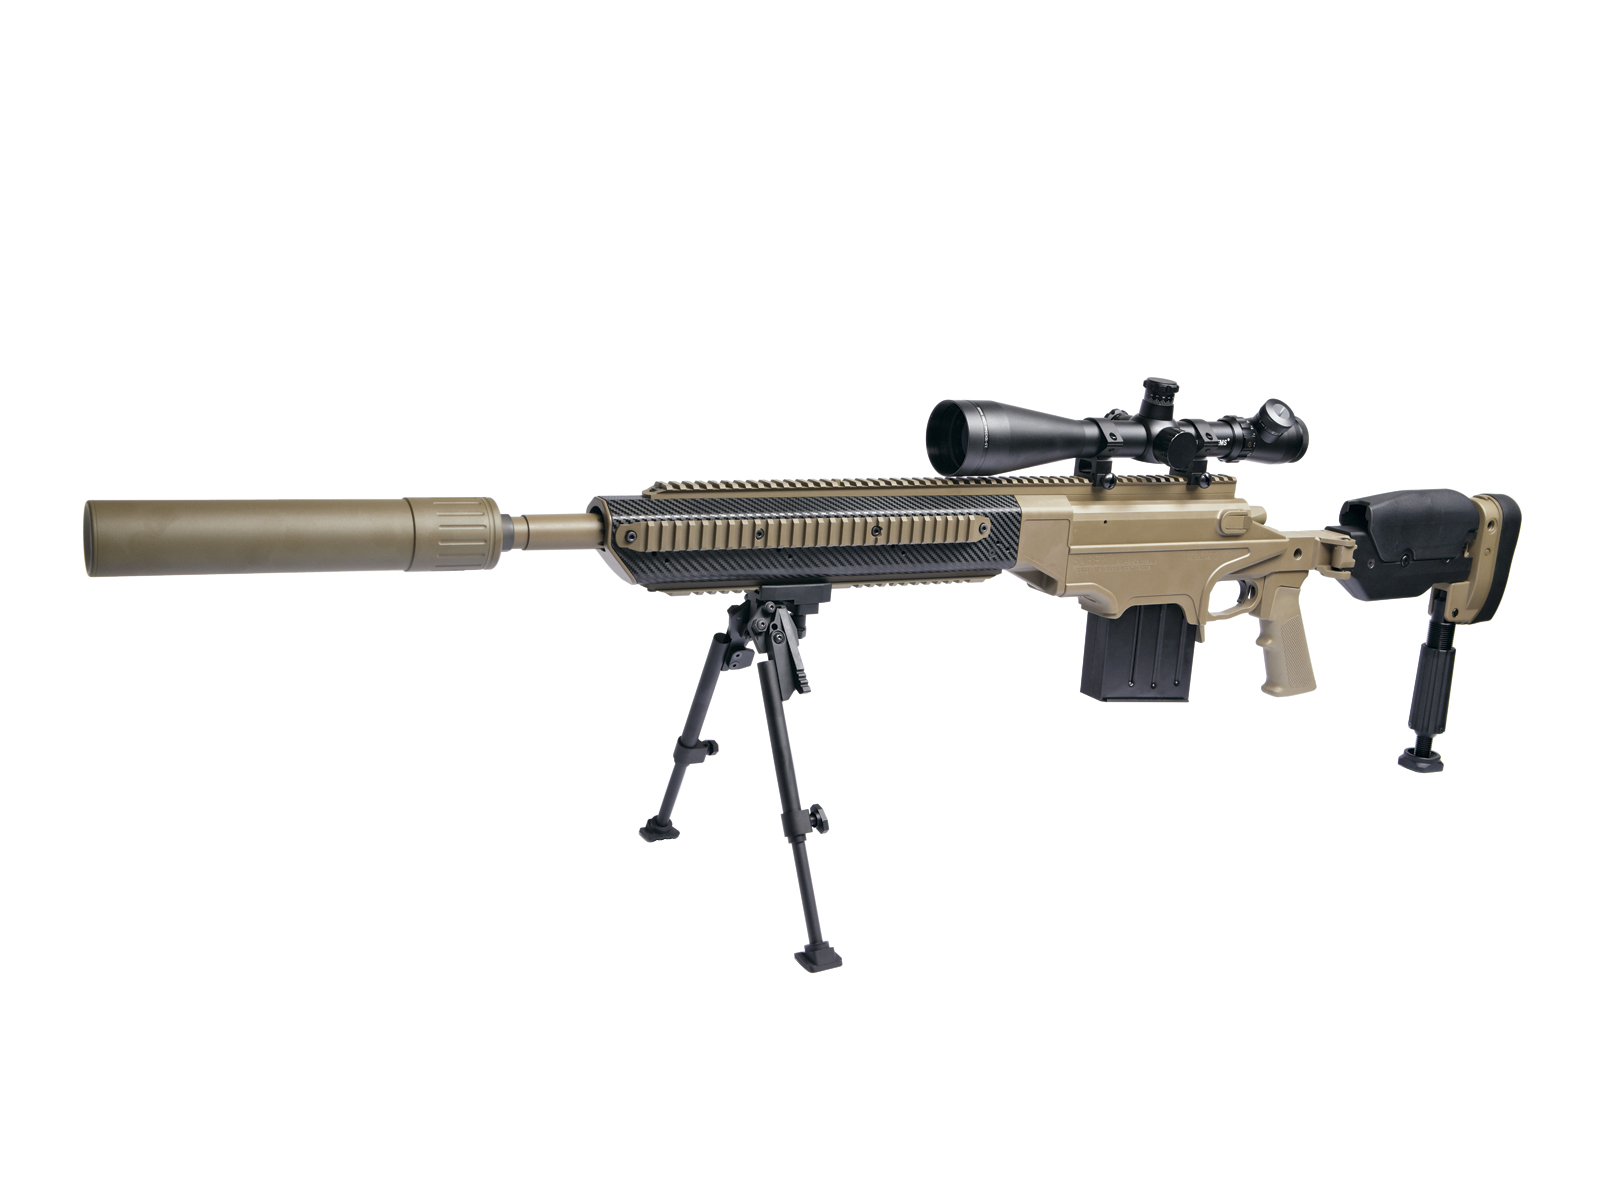 ASG ASW338LM Sniper Rifle by VFC